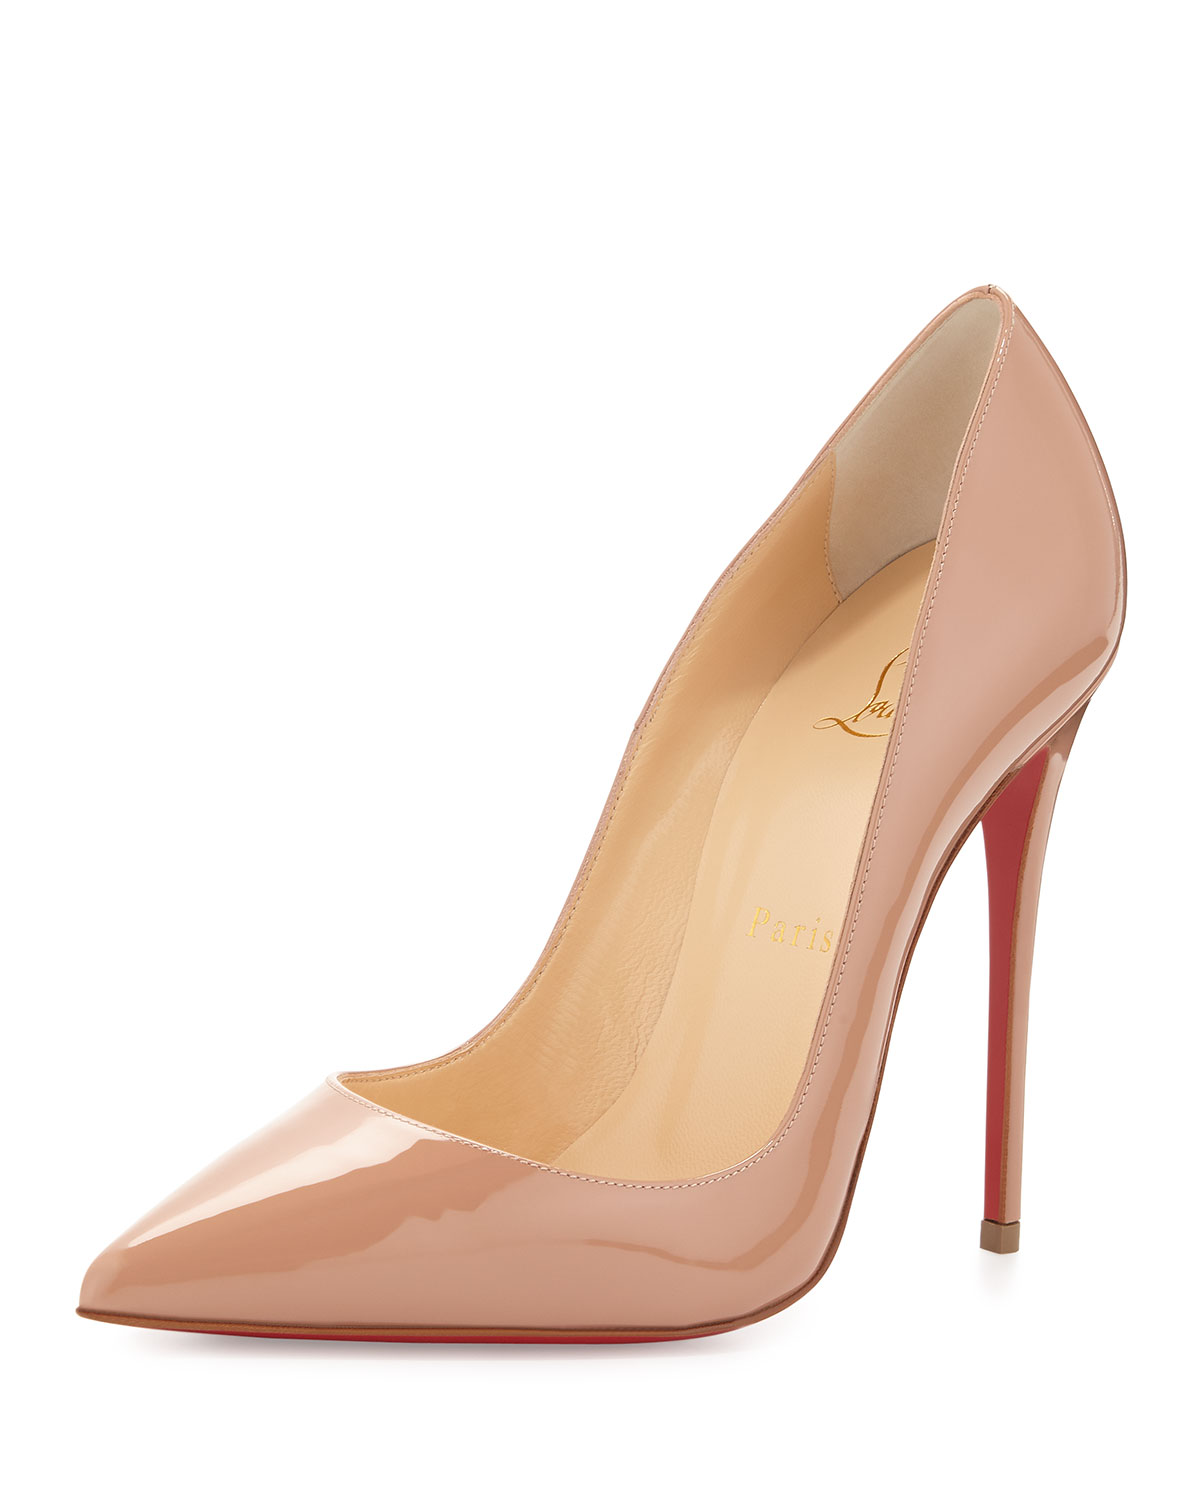 64e07a7d647c Christian Louboutin So Kate Patent Red Sole Pump